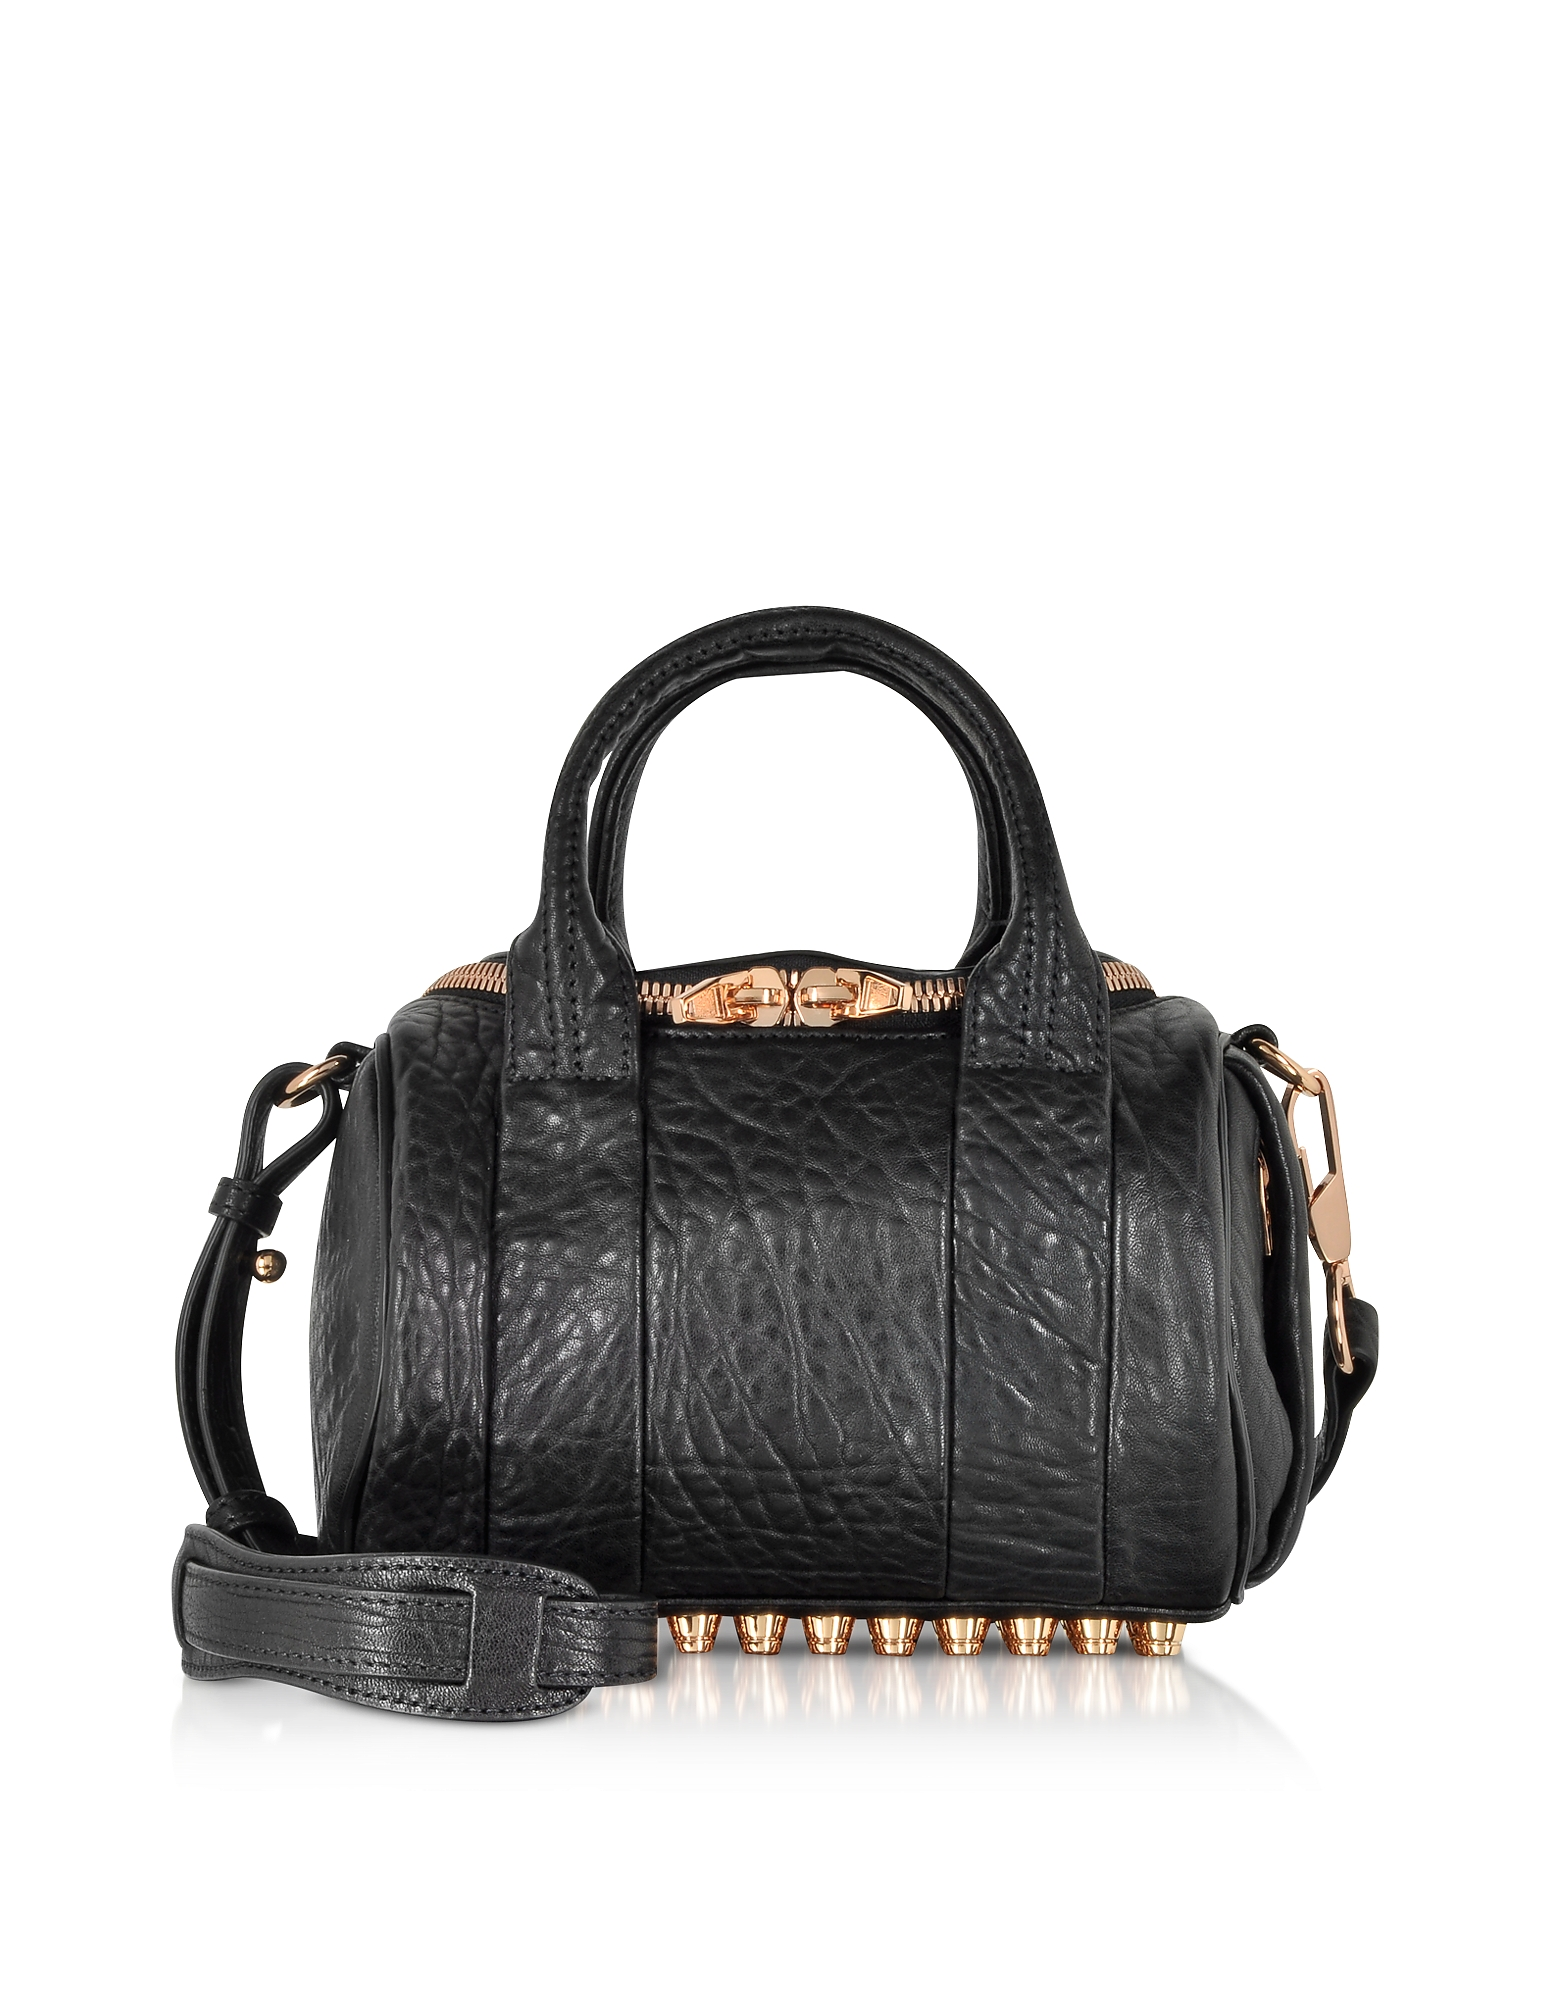 Alexander Wang Handbags, Mini Rockie Black Pebbled Leather Satchel w/Rose Gold Studs